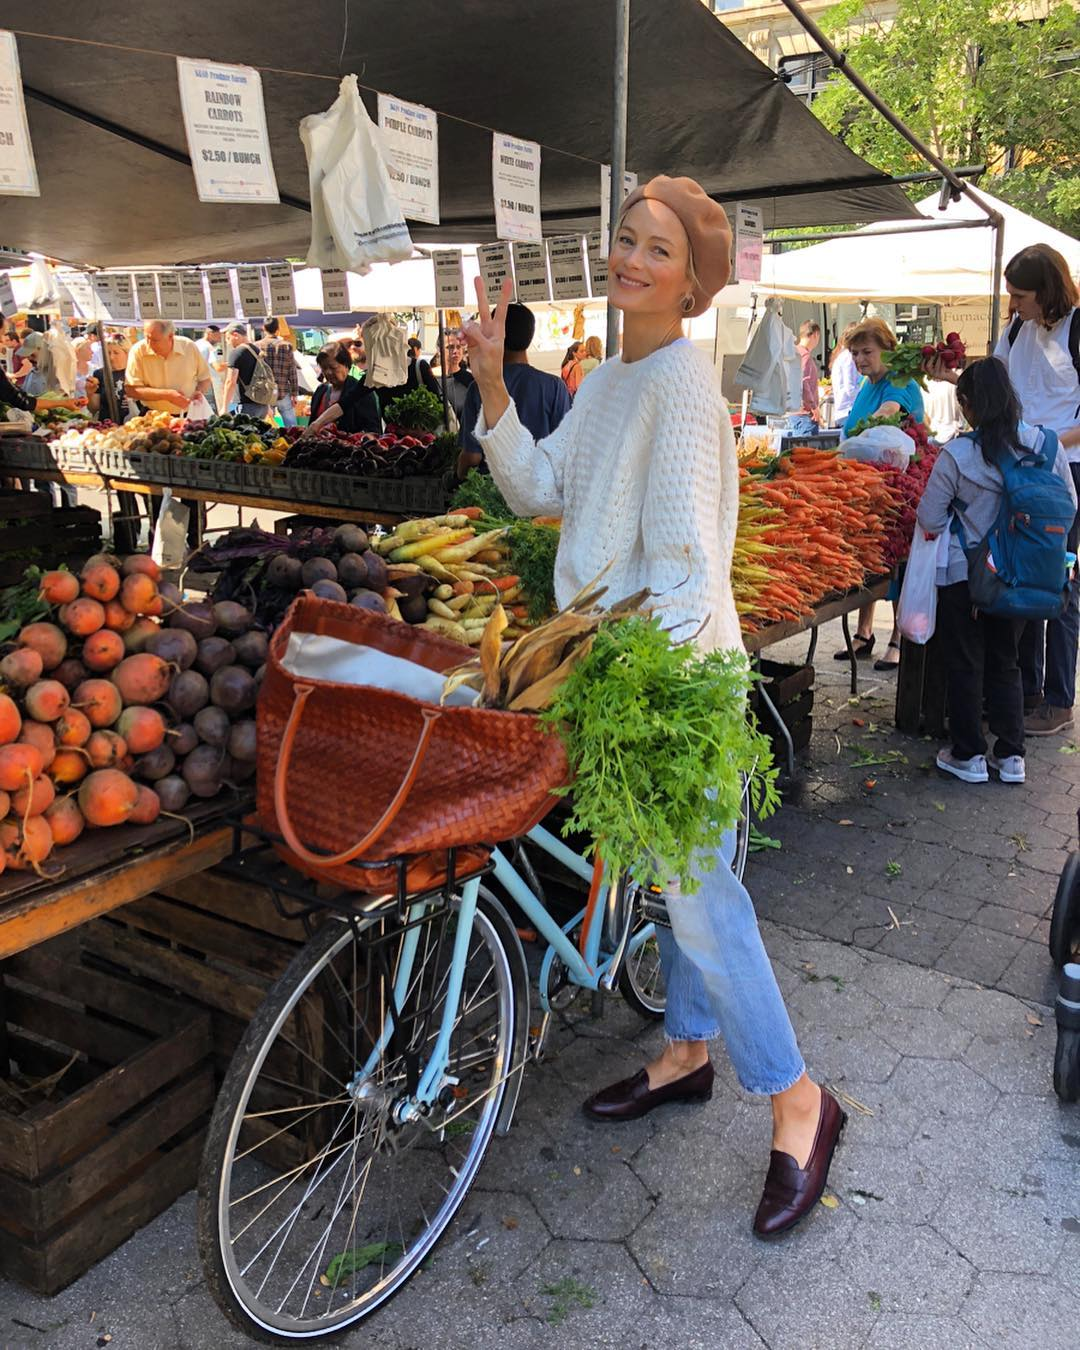 The Perfect Weekend Outfit According to a Supermodel Carolyn Murphy — Beret, White Sweater, Straight-Leg Jeans, and Loafers